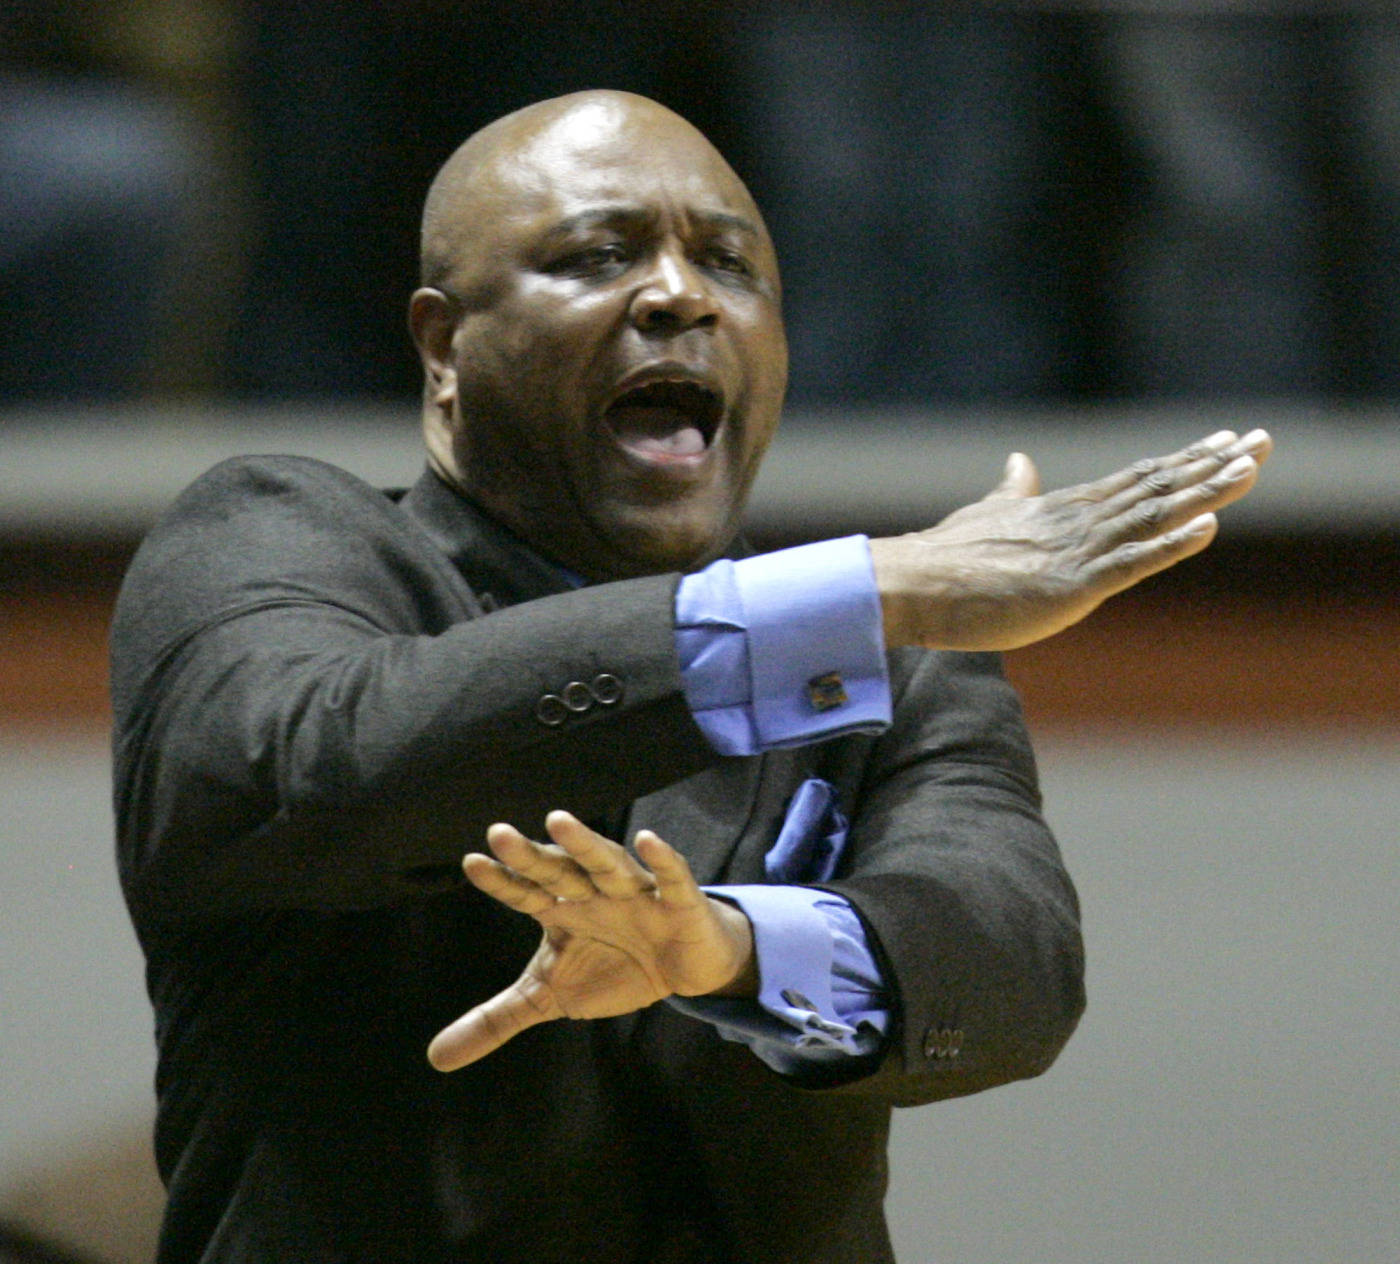 Florida State's head coach Leonard Hamilton signals his team during the first half of a college basketball game against Virginia Tech in Blacksburg, Va., Tuesday, Jan. 29, 2008.